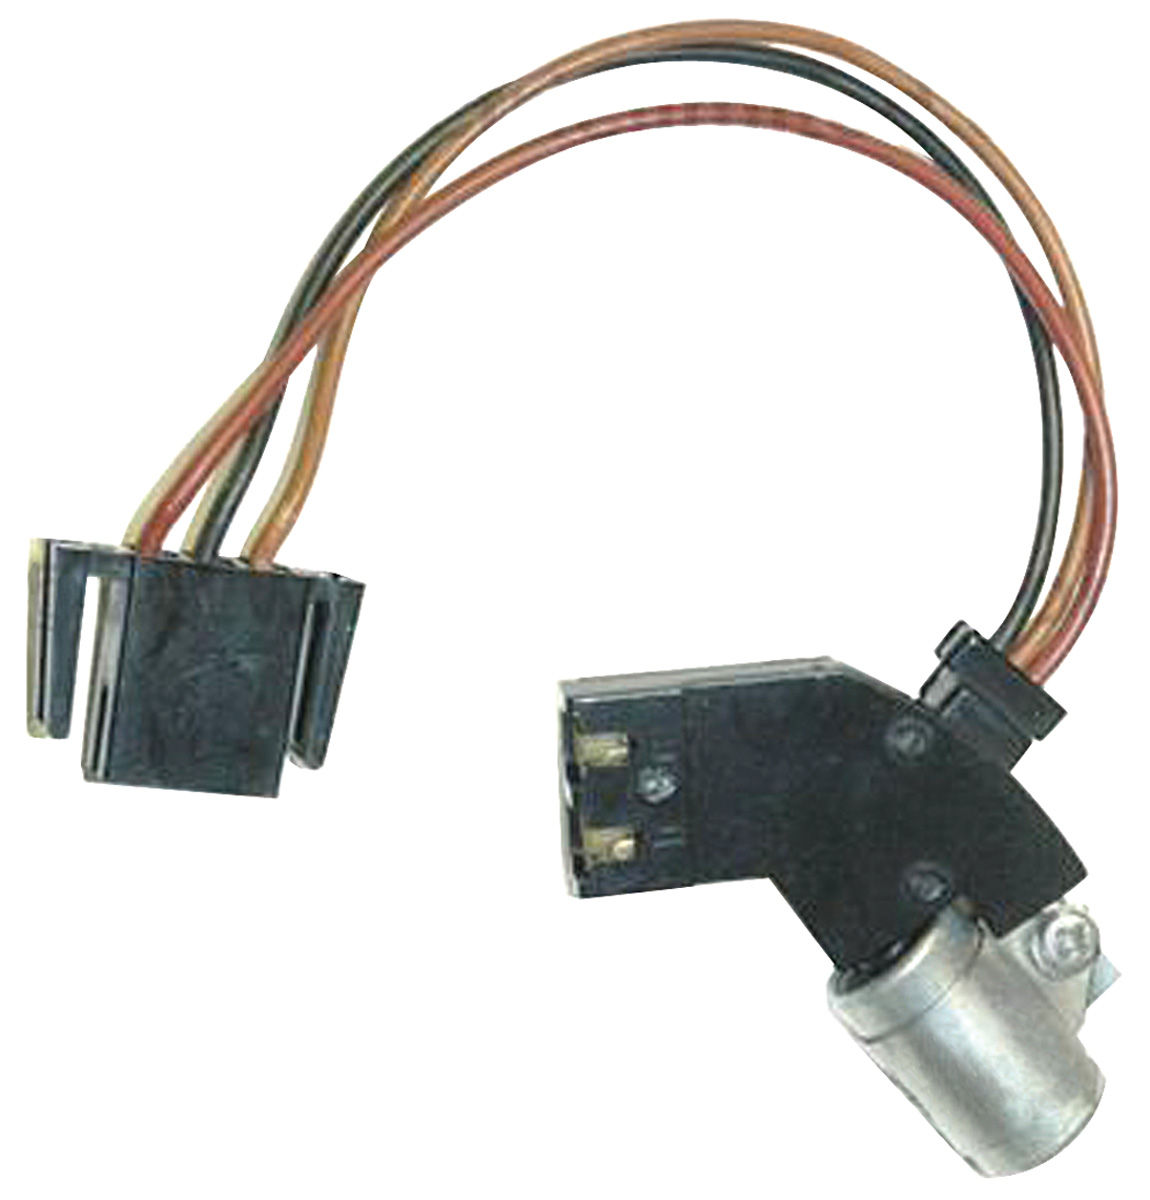 1892265 lrg lectric limited 1978 88 monte carlo ignition module to coil hei wiring harness at gsmx.co